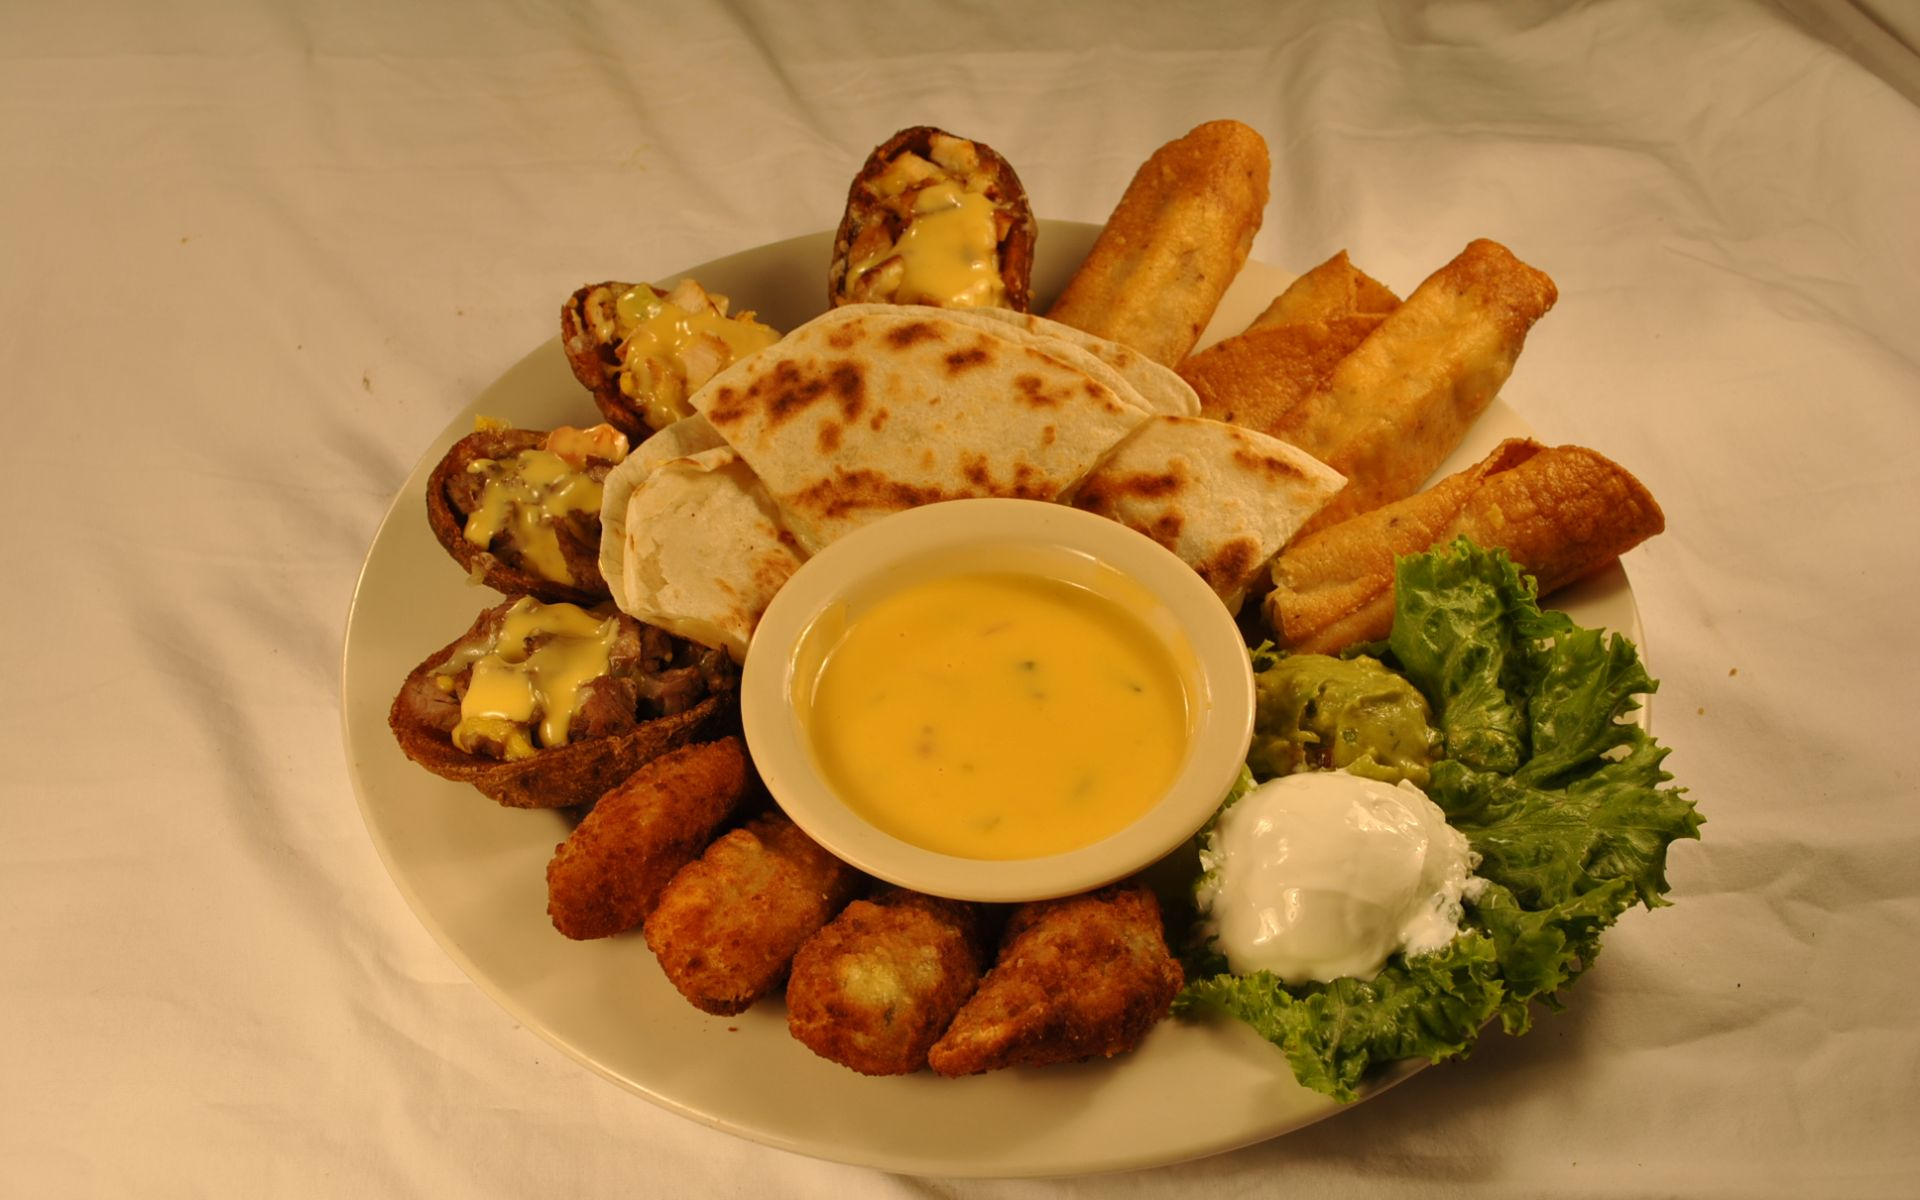 Appetizer sampler with taquitos, quesadilla and stuffed potato skins with cheese and a bowl of queso